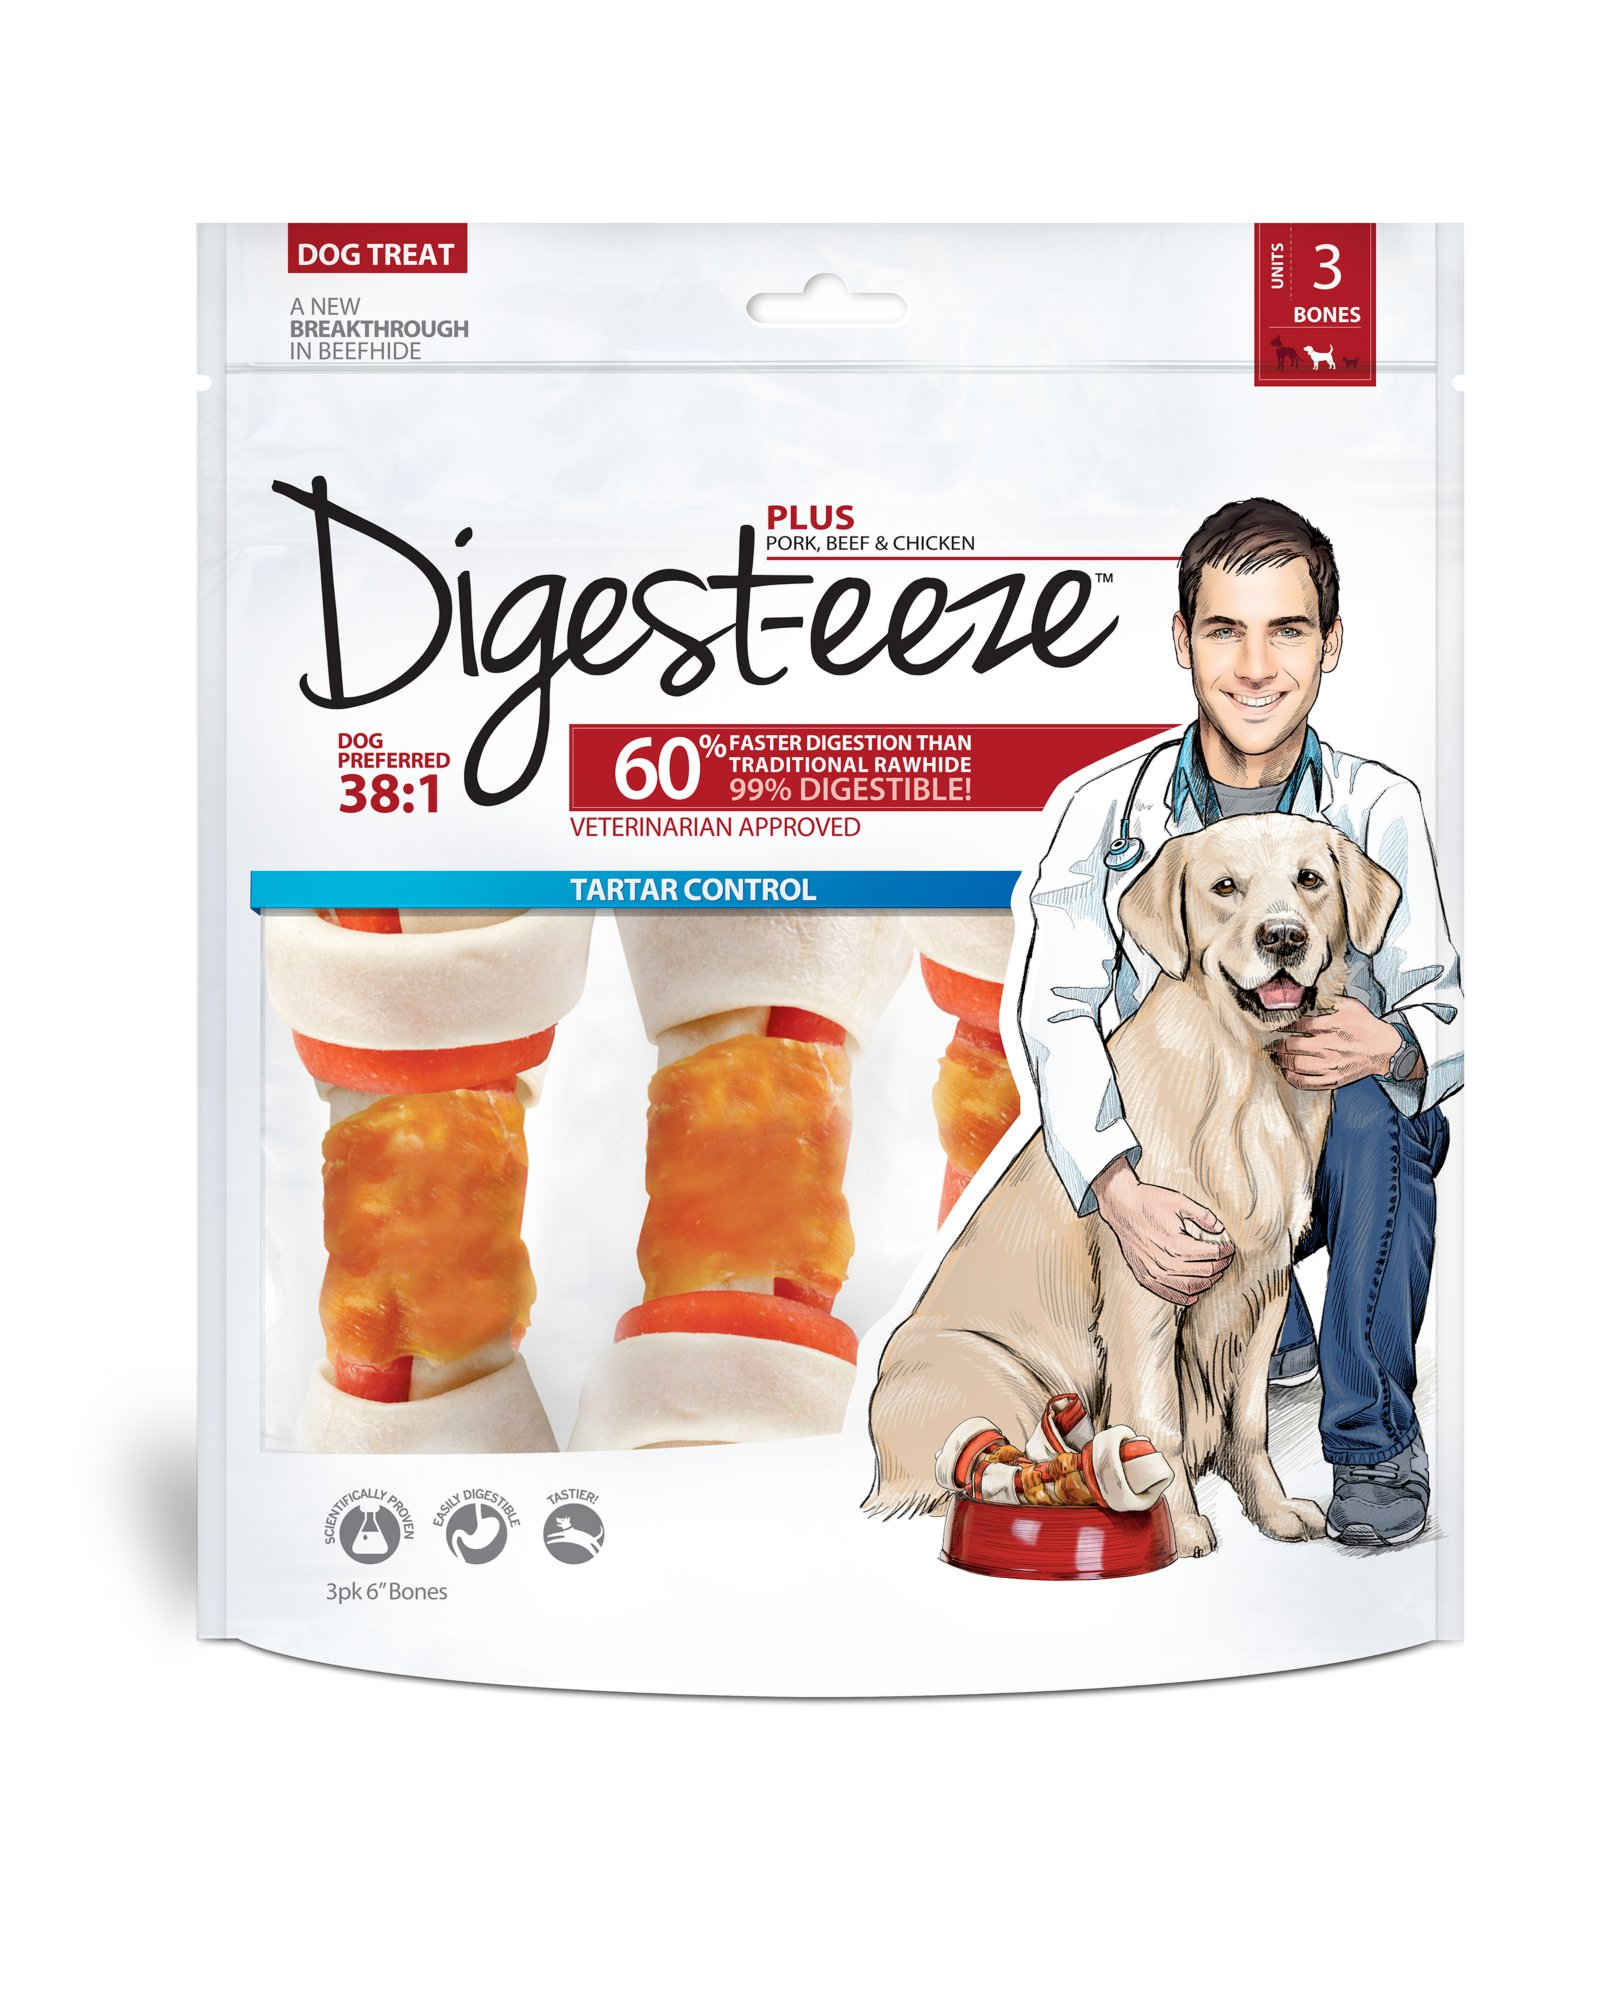 Digest-eeze Plus 3-Pack Flavored Rawhide Bones Dog Treats